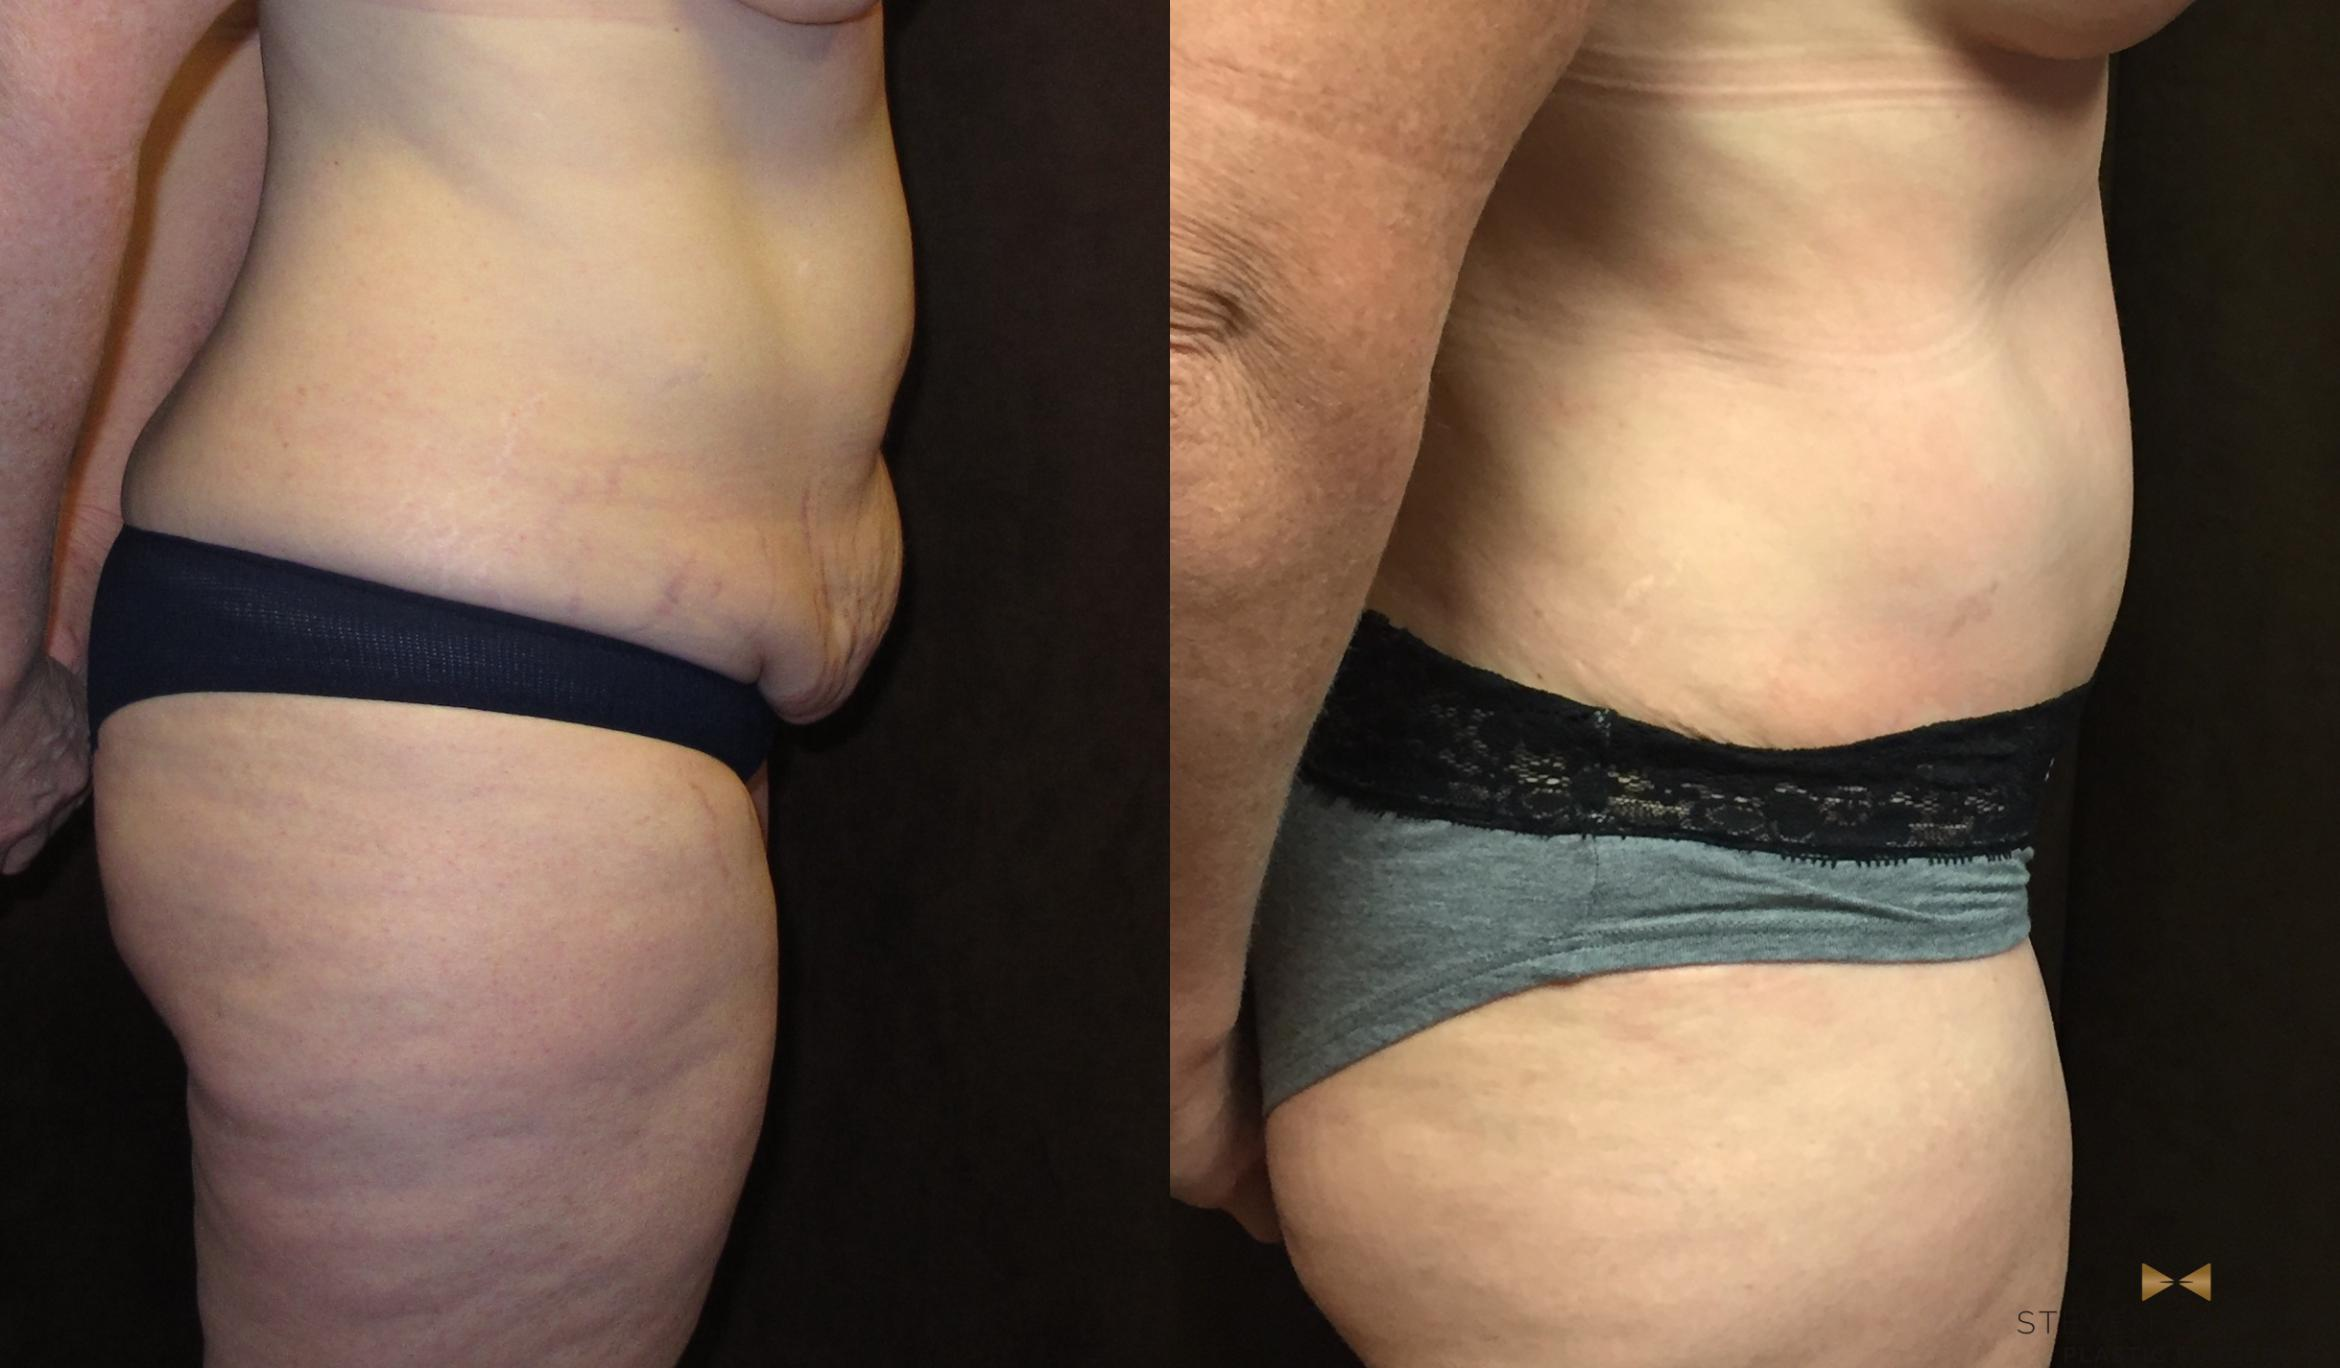 At 46 This Mother Of 2 Looks Great After Tummy Tuck And Liposuction Surgery